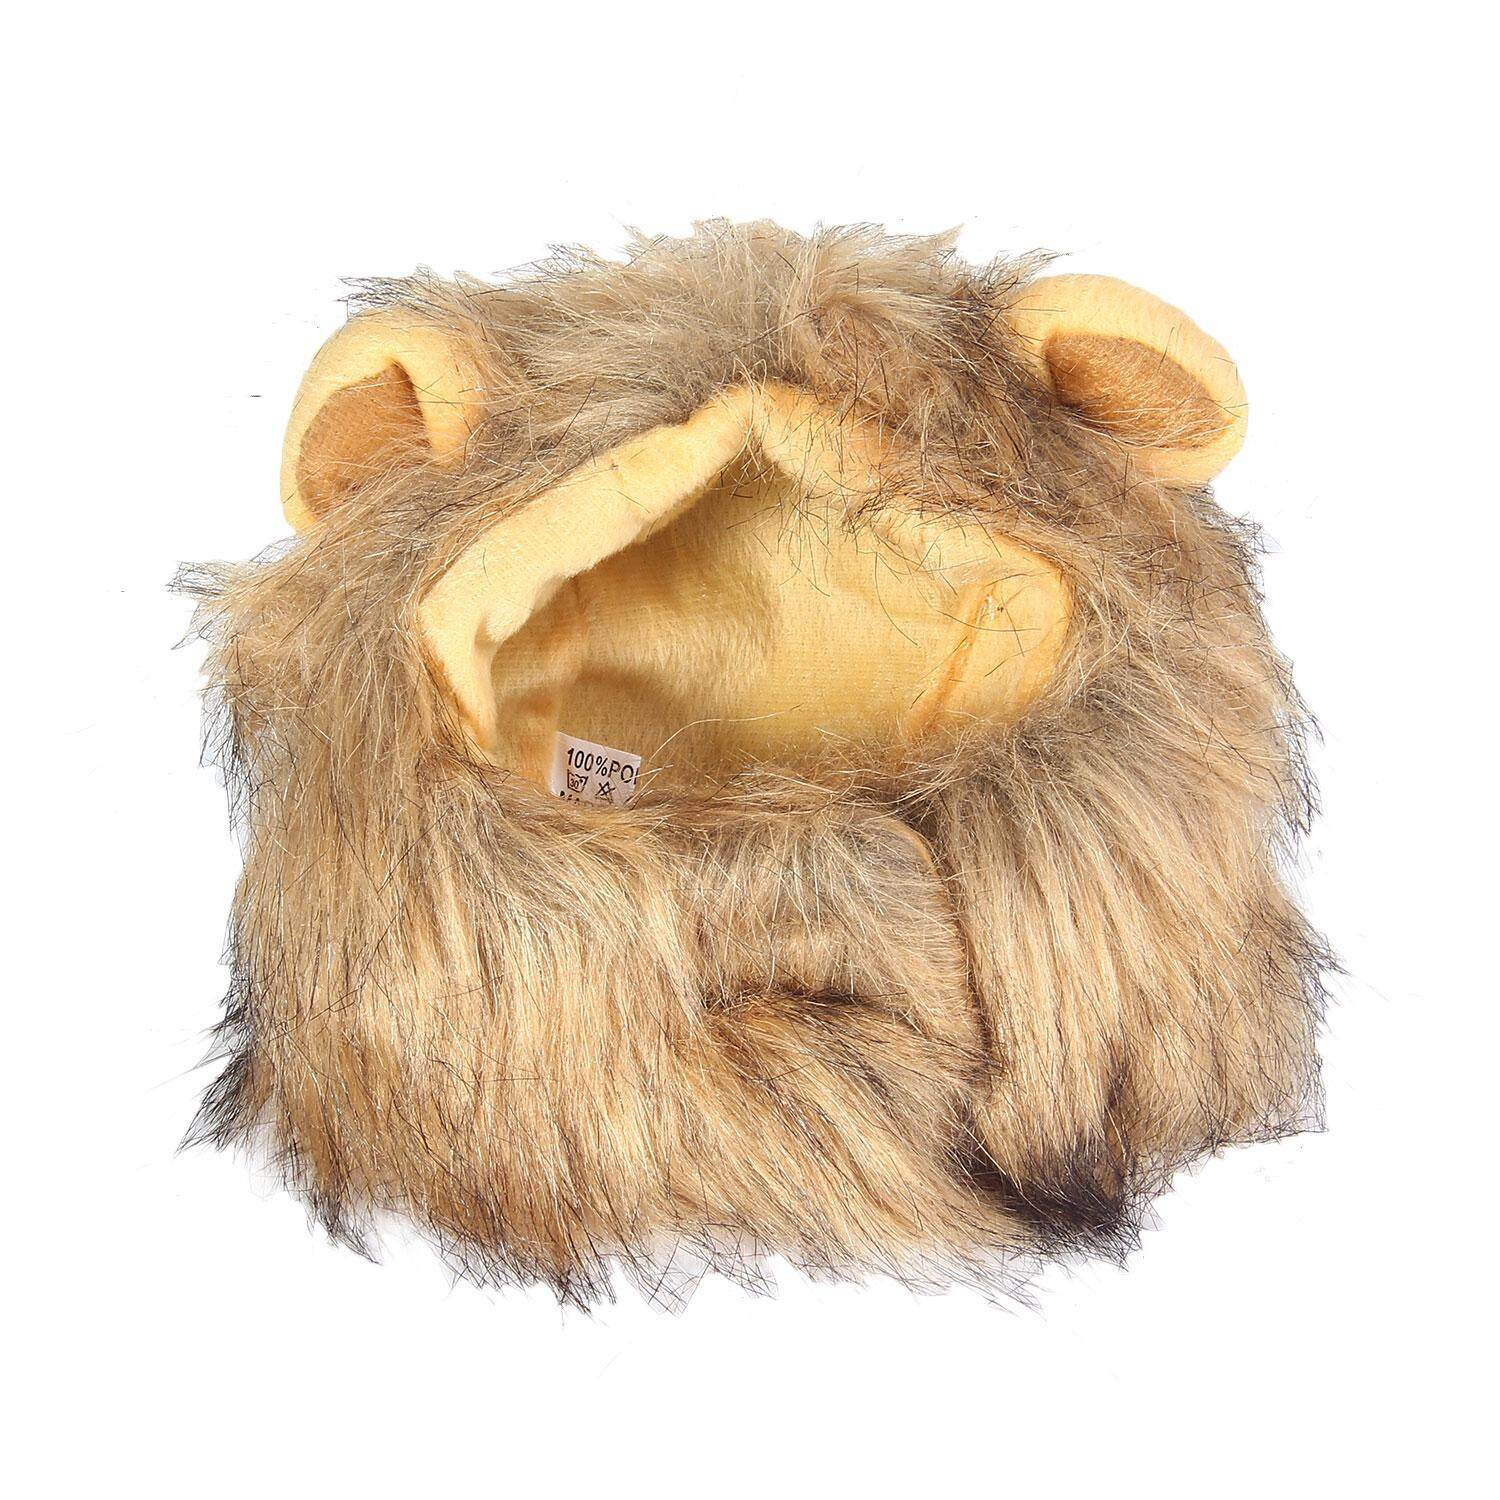 iokioh Lion Mane Wig For Dog And Cat Costume Pet Adjustable Washable Comfortable Fancy Lion Hair Dog Clothes Dress For Halloween Christmas Easter Festival Party Activity - intl